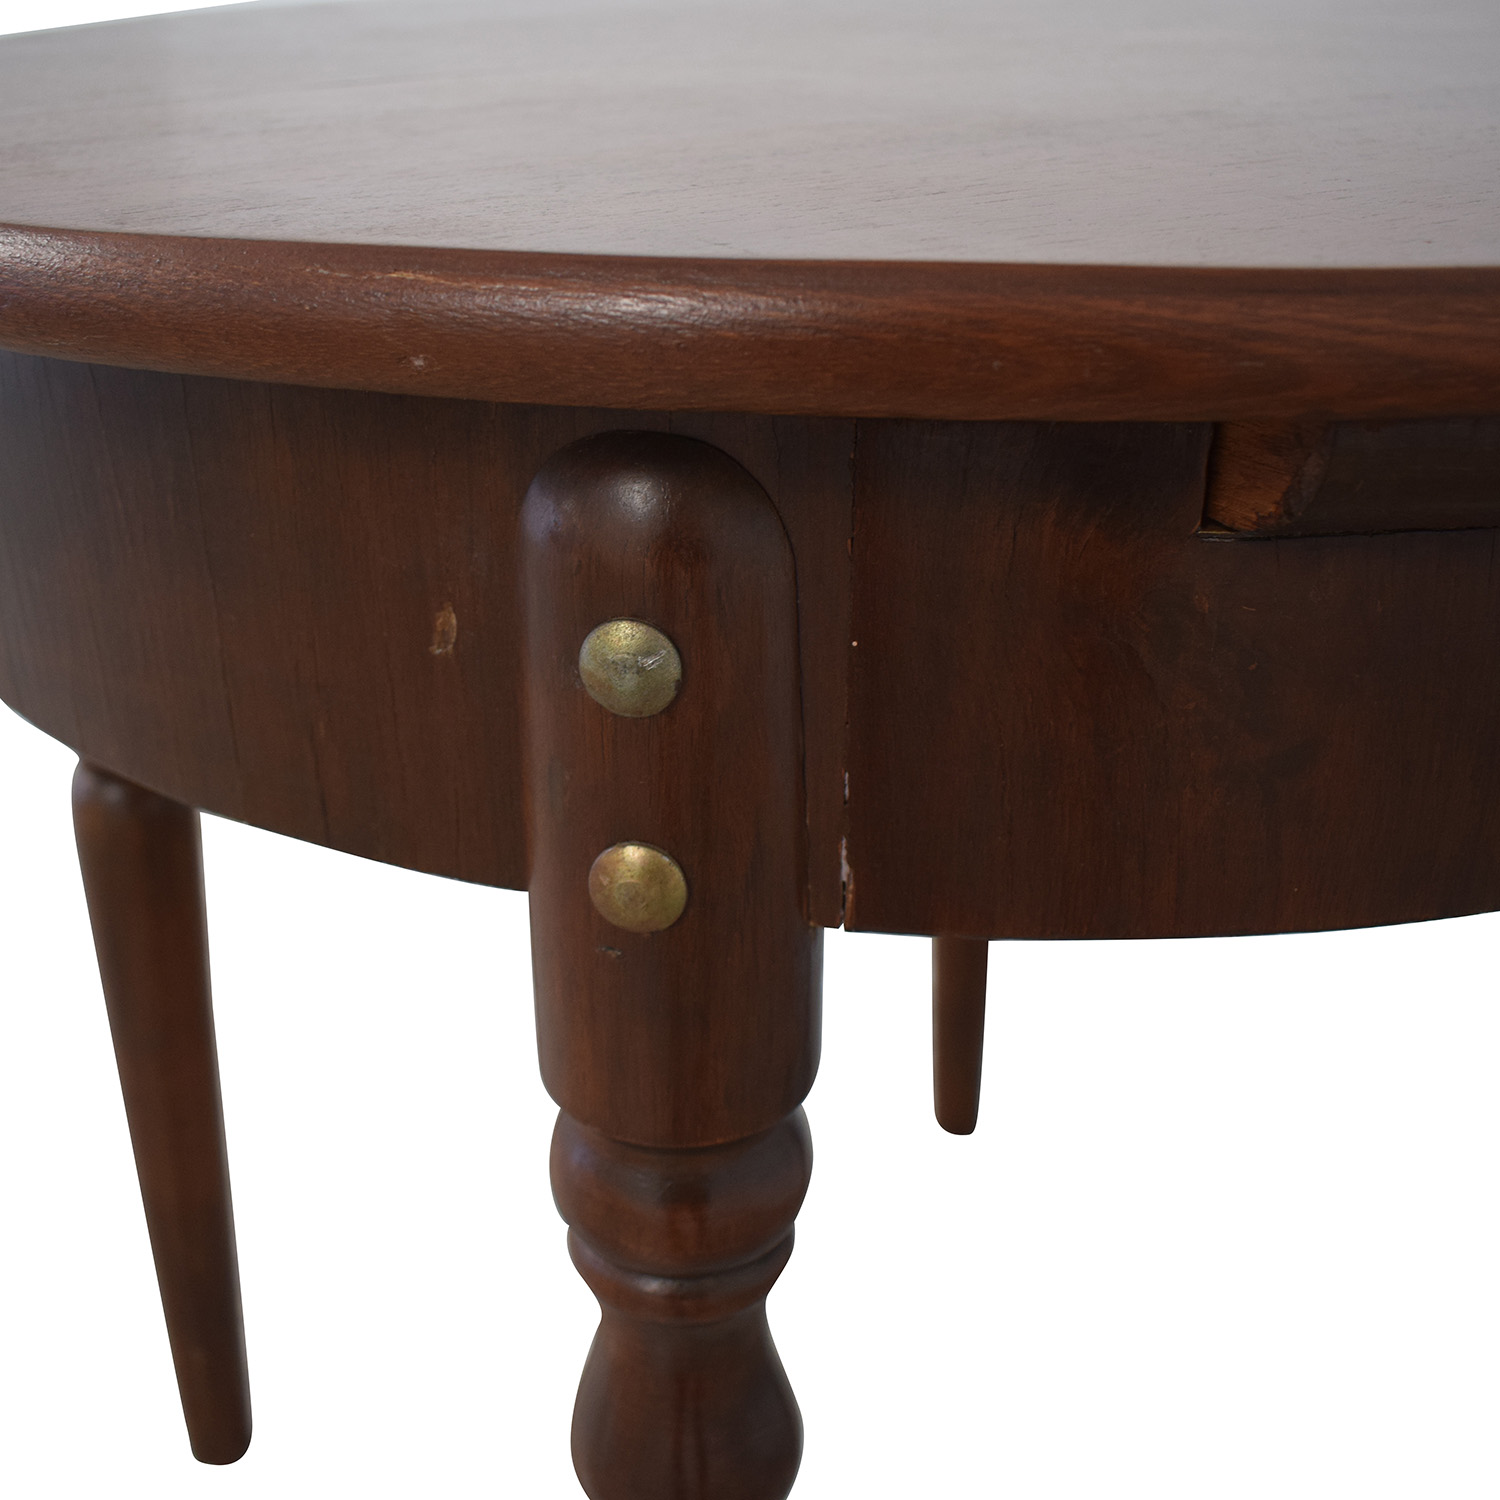 Vintage Round Extendable Table second hand